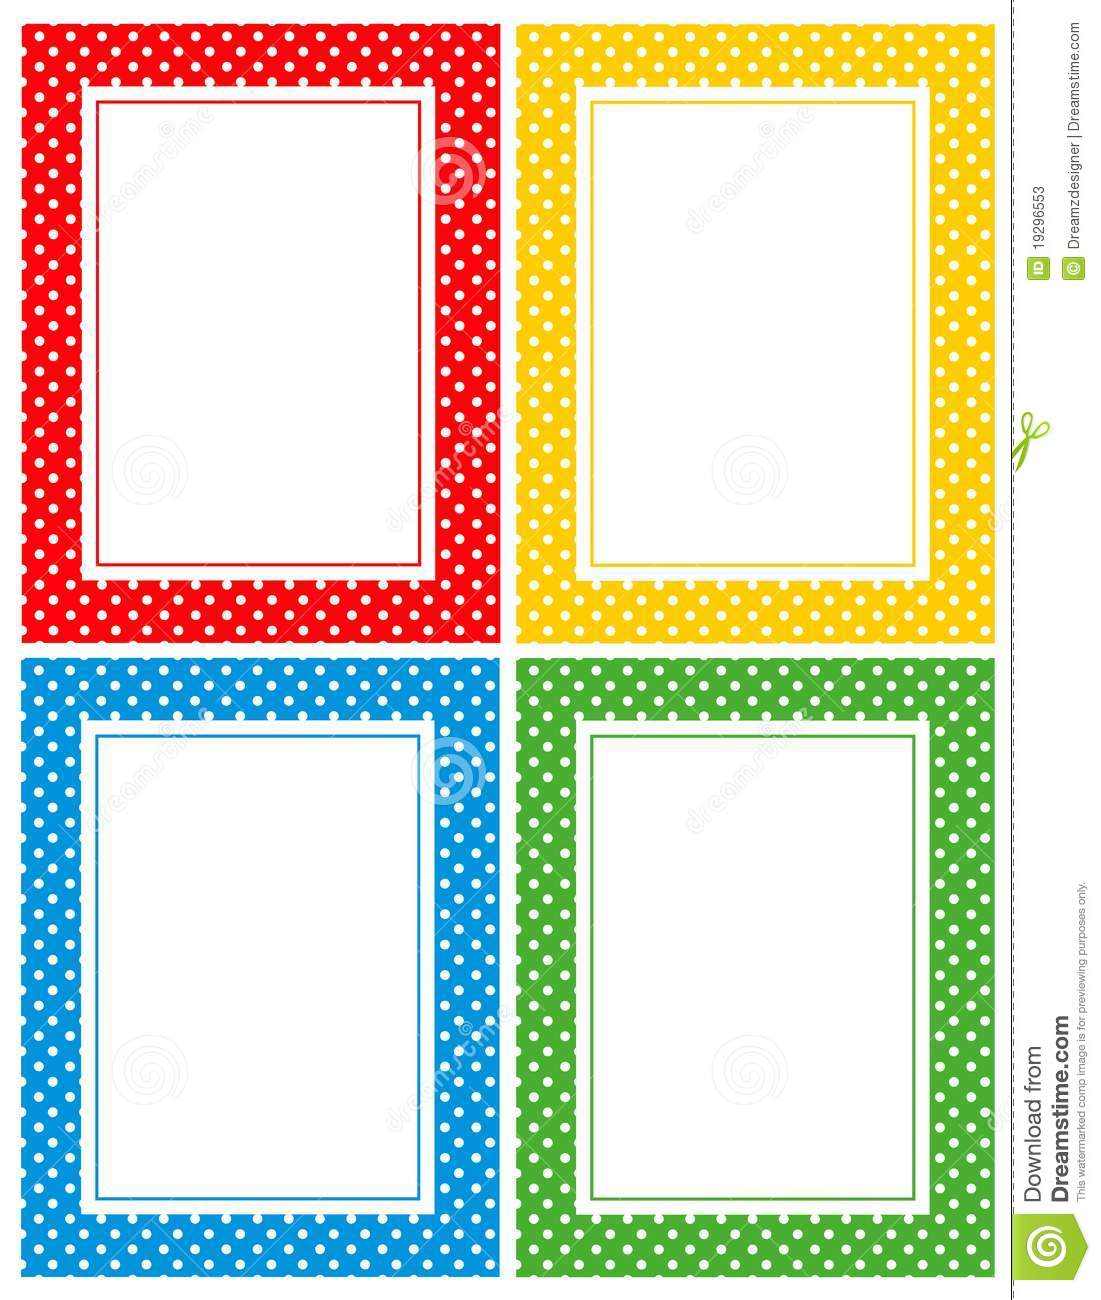 Retro Polka Dots Border Stock Vector Illustration Of